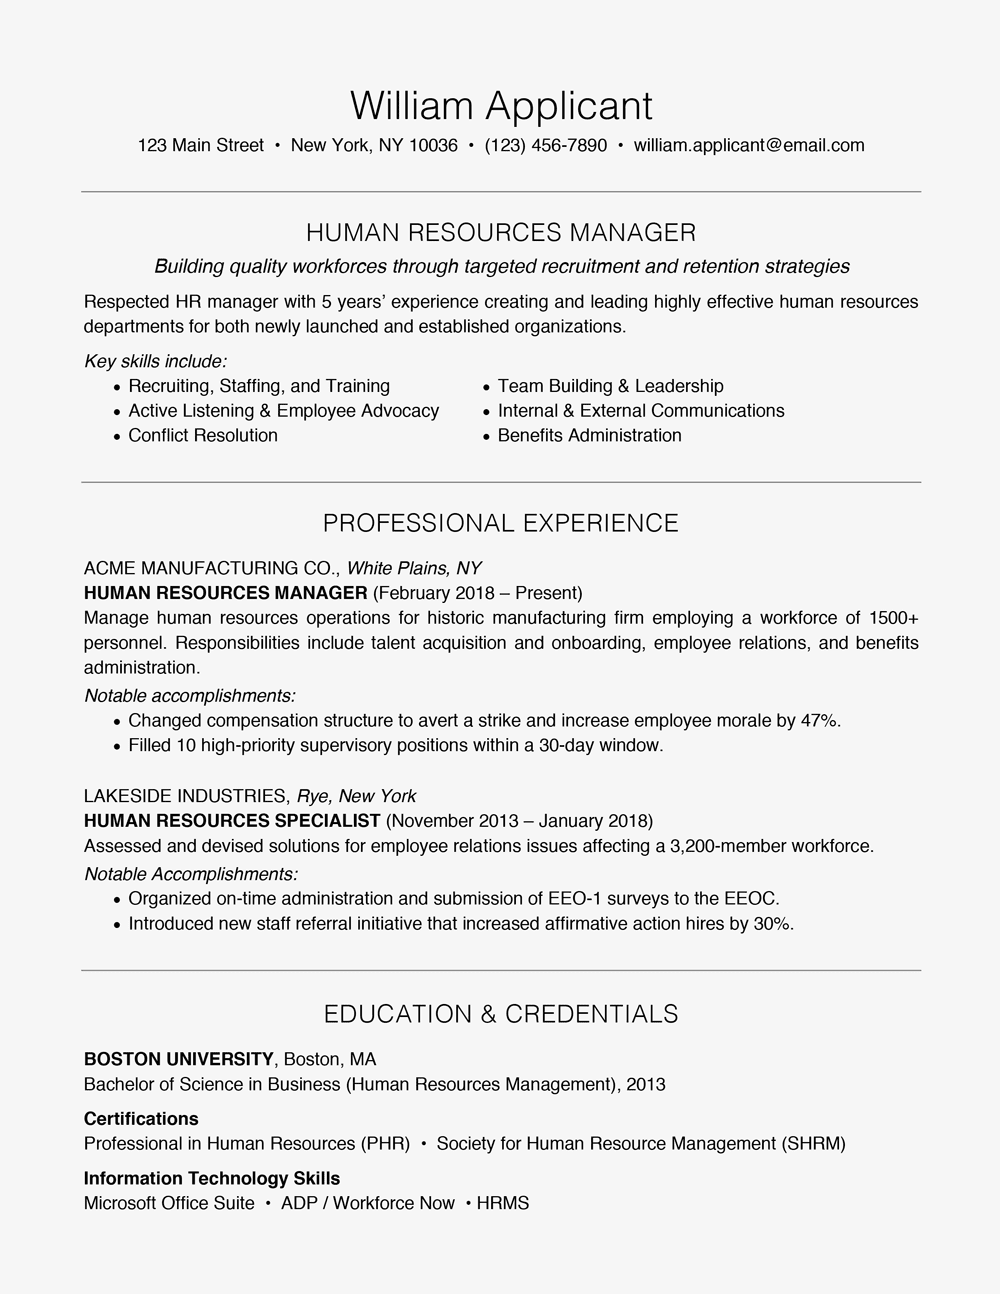 Management Skills Resume Interesting Management Resume Examples And Writing Tips